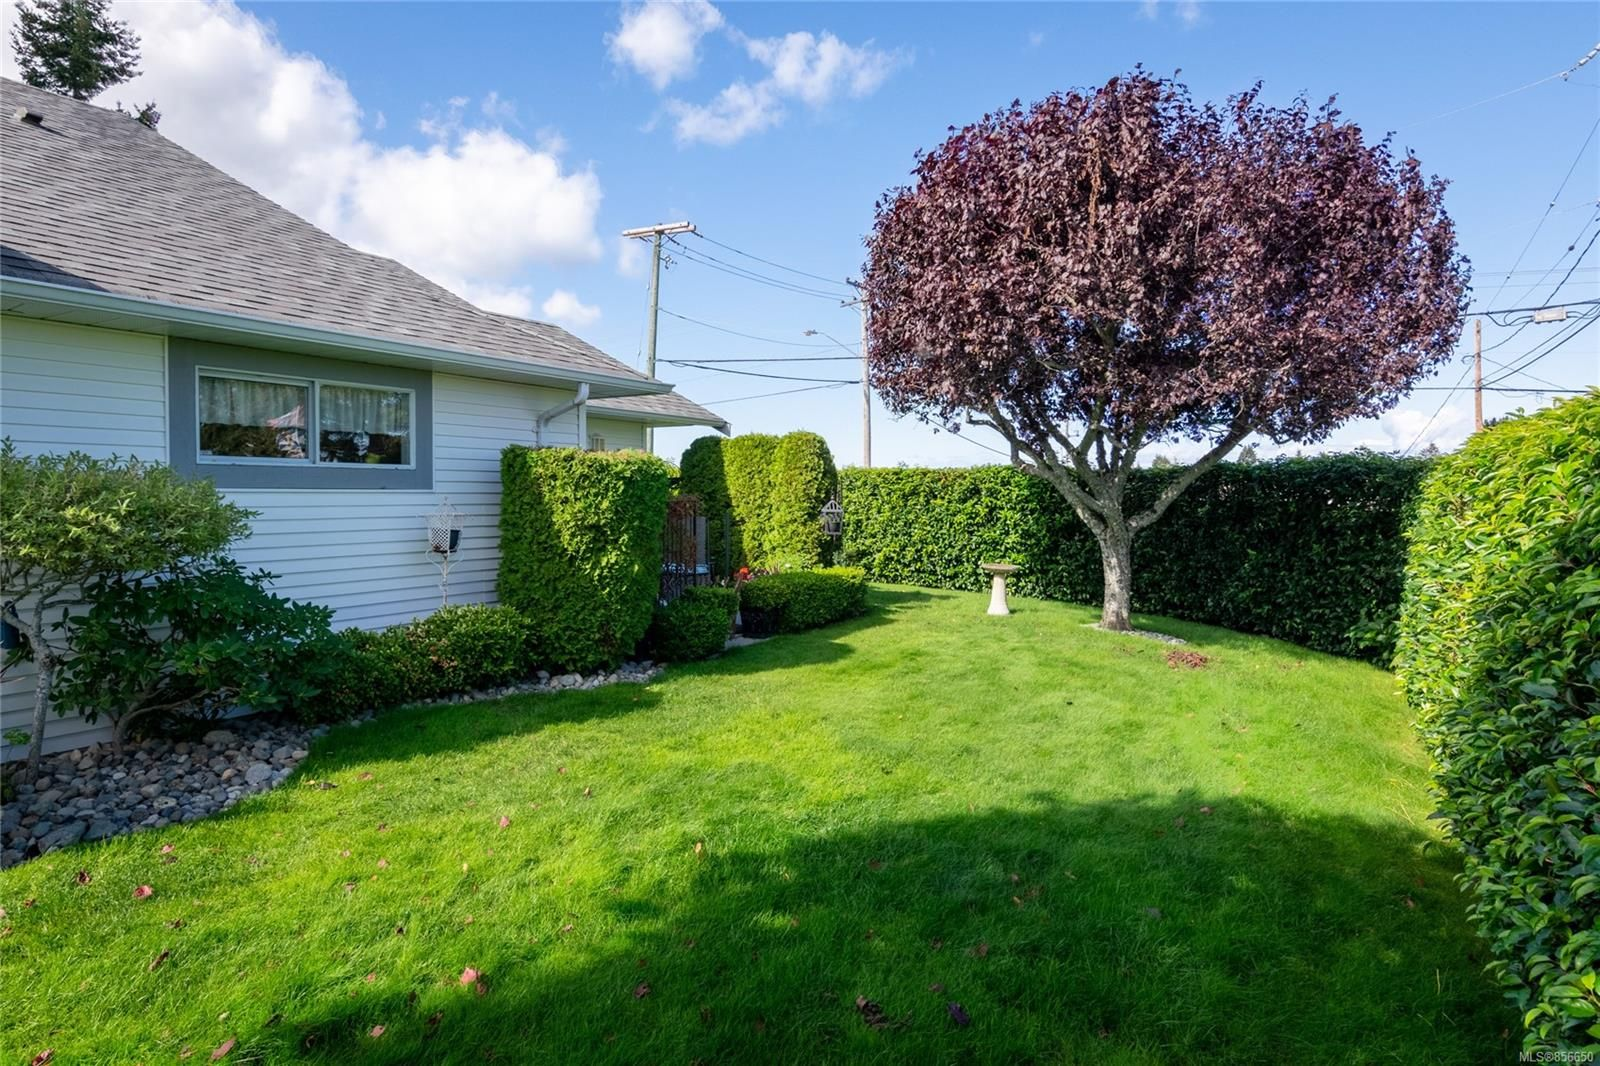 Photo 24: Photos: 4 305 Blower Rd in : PQ Parksville Row/Townhouse for sale (Parksville/Qualicum)  : MLS®# 856650